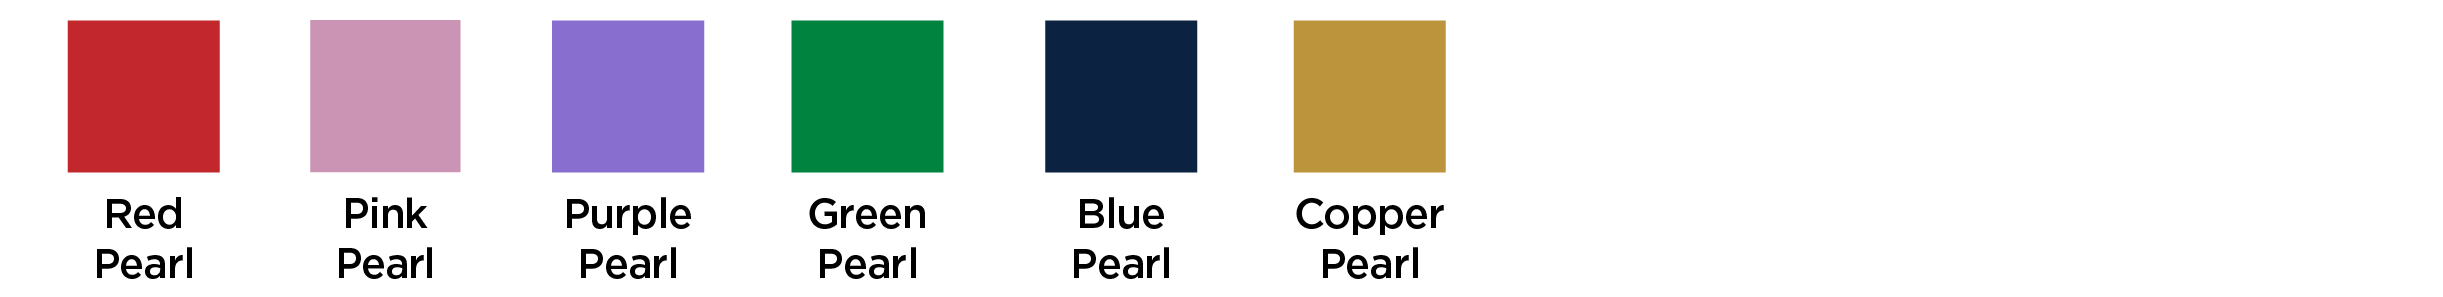 colorswatch-03.png